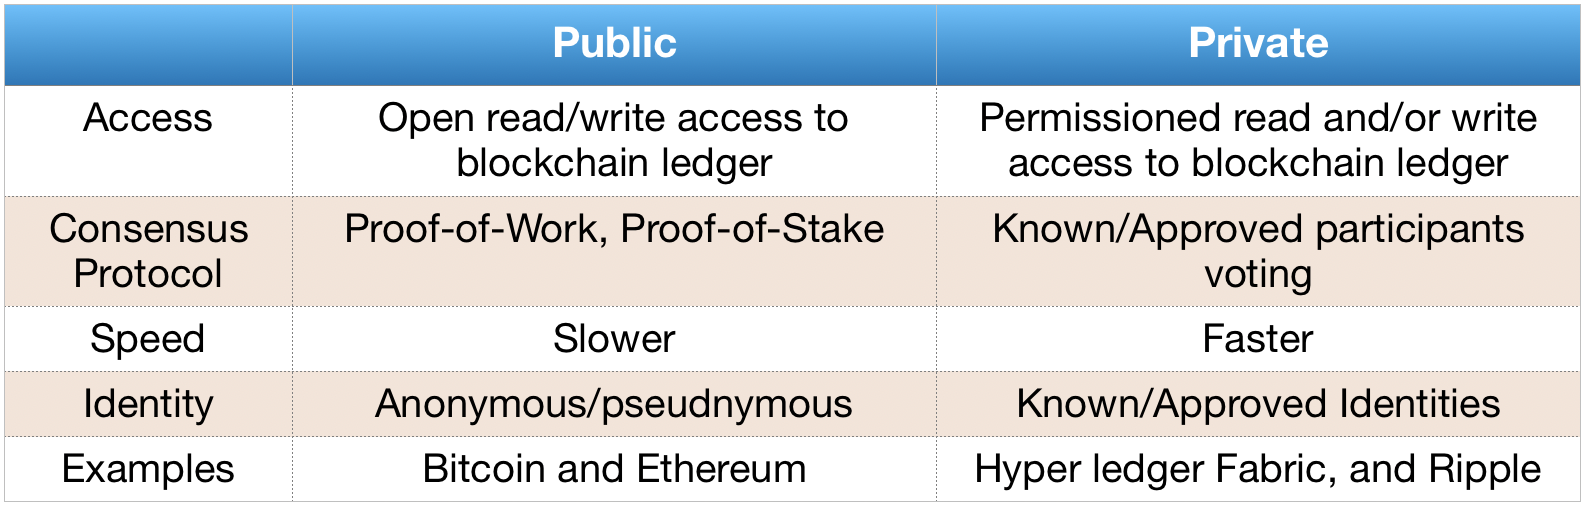 A few basic characteristics comparisons between public and private blockchain platforms